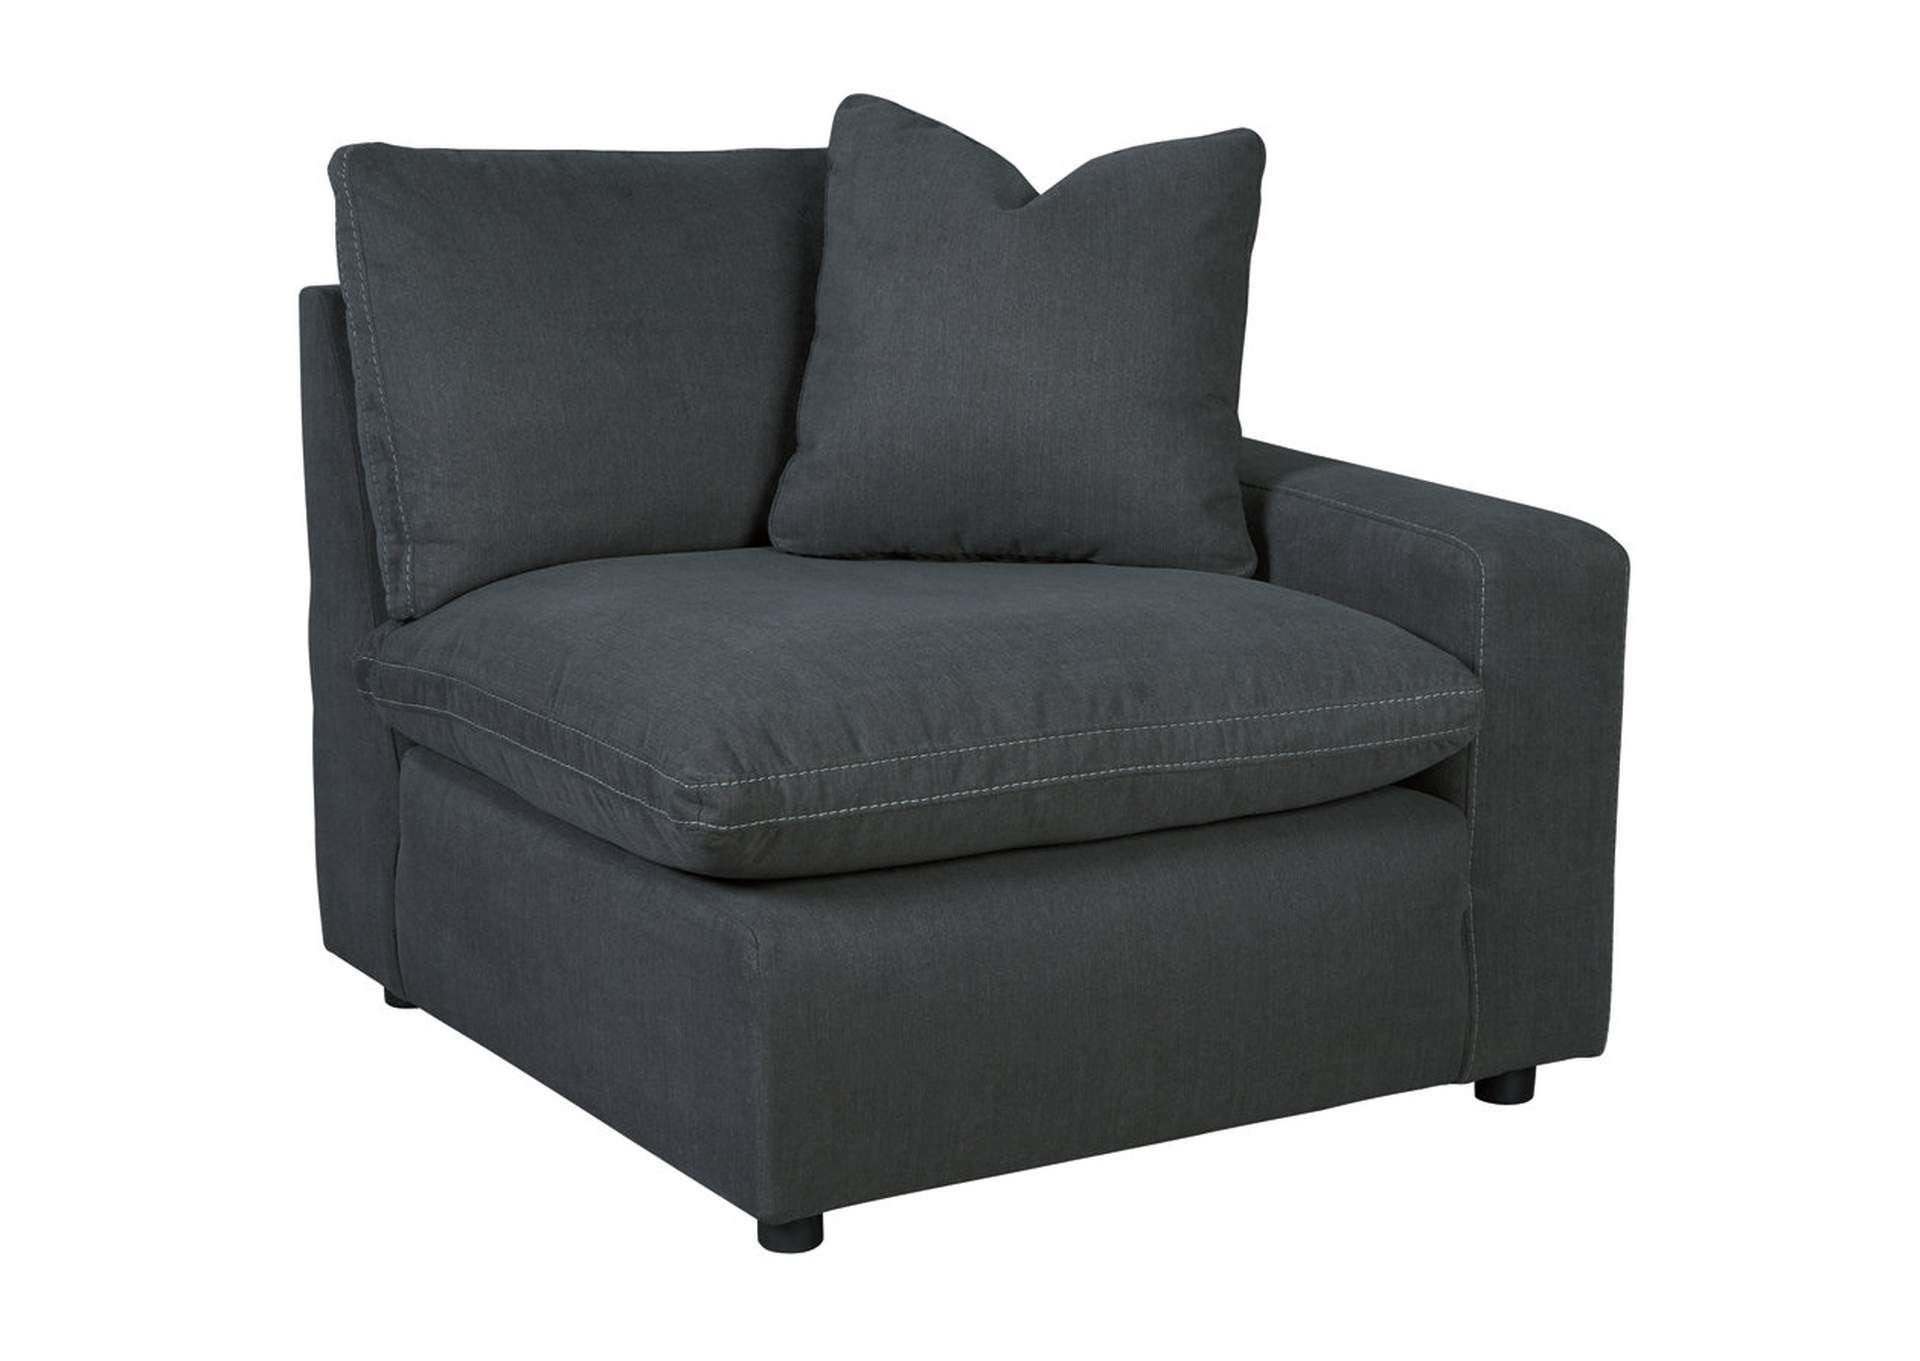 Savesto Charcoal RAF Corner Chair,Signature Design By Ashley